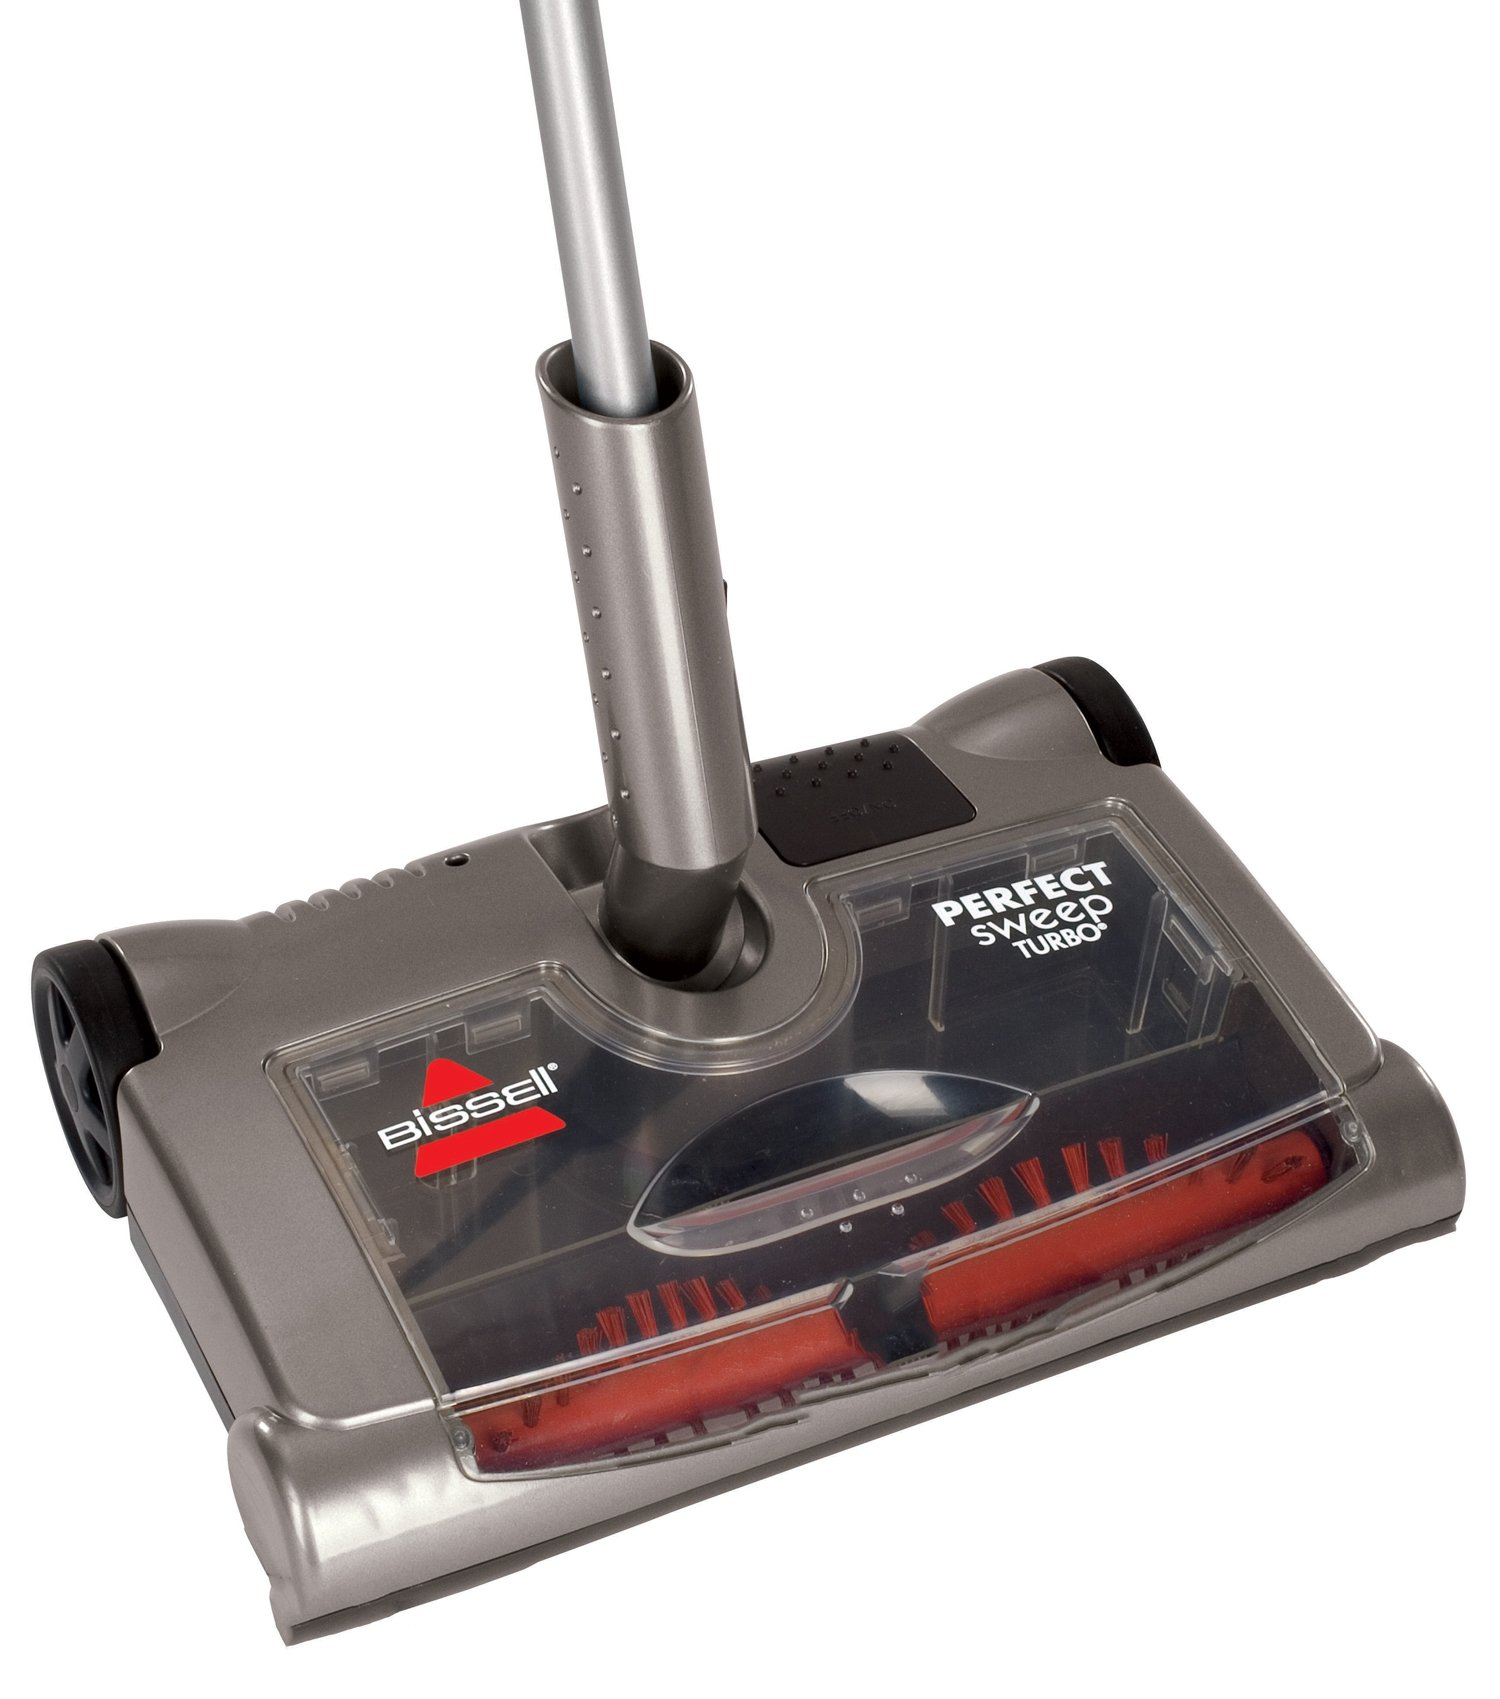 Bissell 28806 Perfect Sweep Turbo, Grey by Bissell